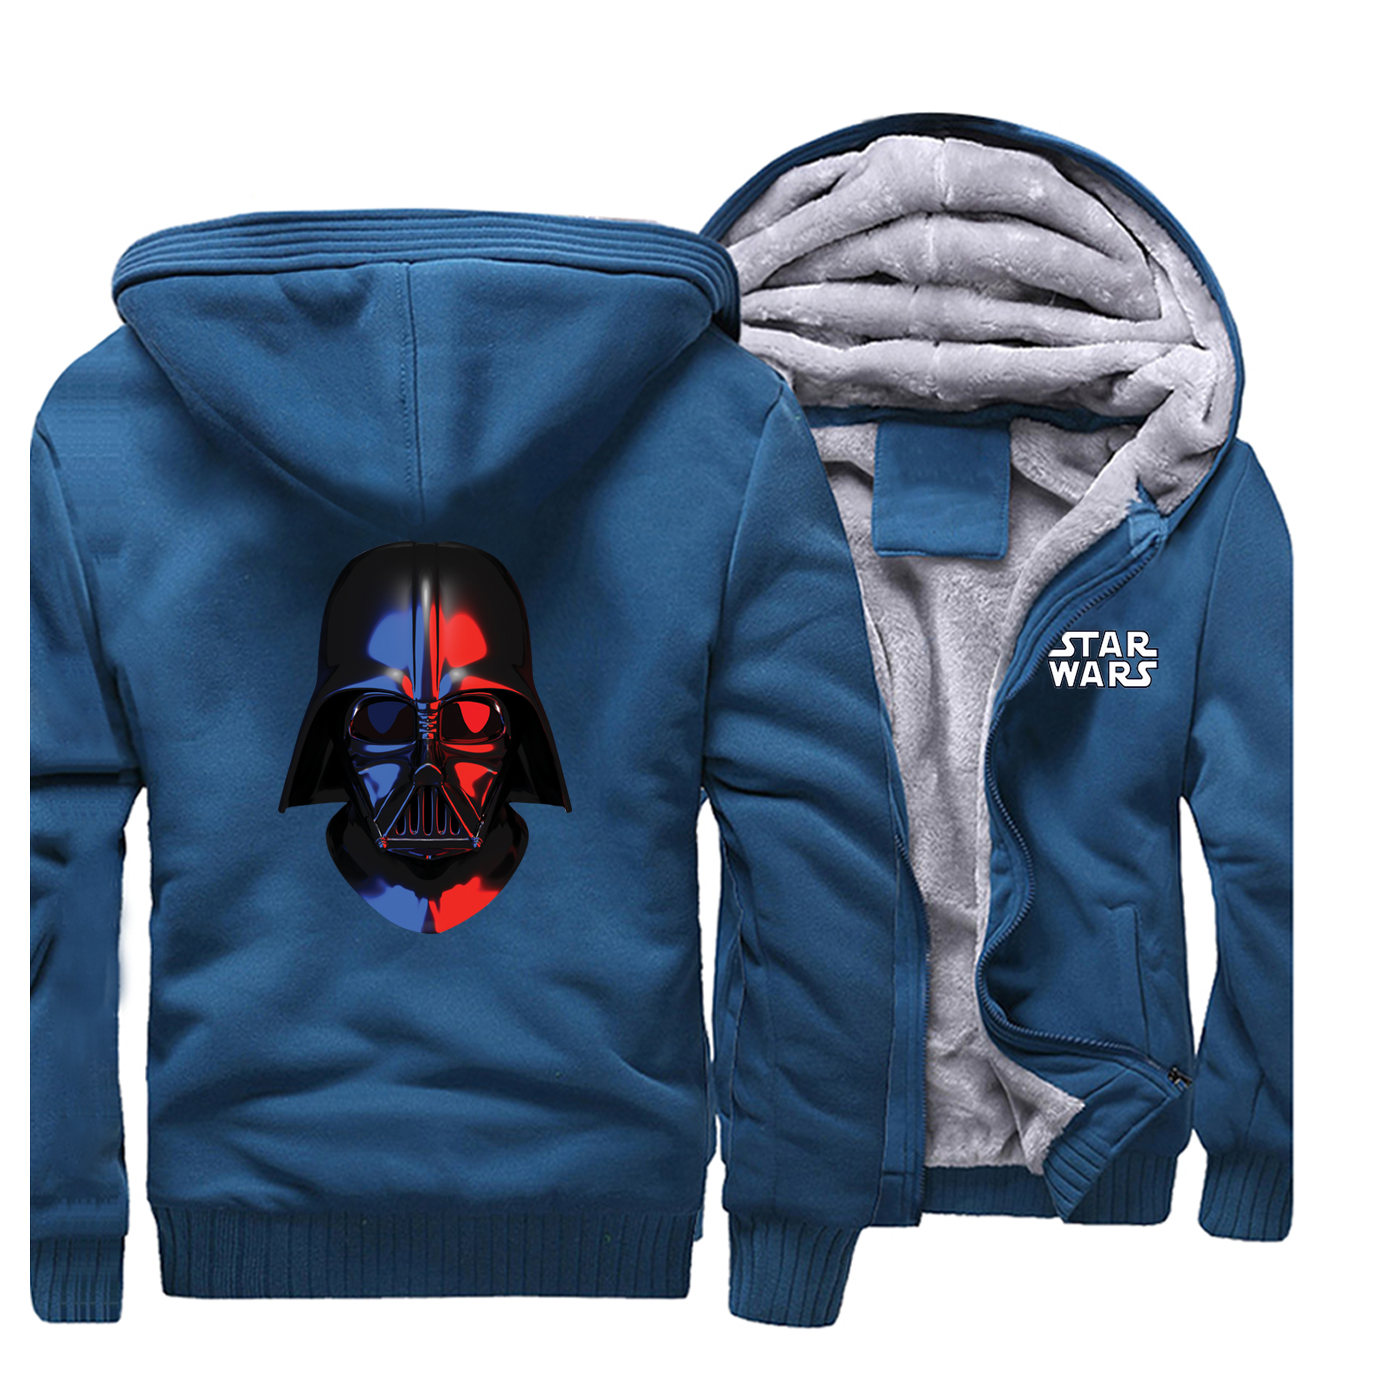 star wars Thick Hoodie Autumn Winter men Coat Funny novel Men's Sweatshirt Harajuku Hip Hop Jacket Darth Vader Streetwear Hoody image